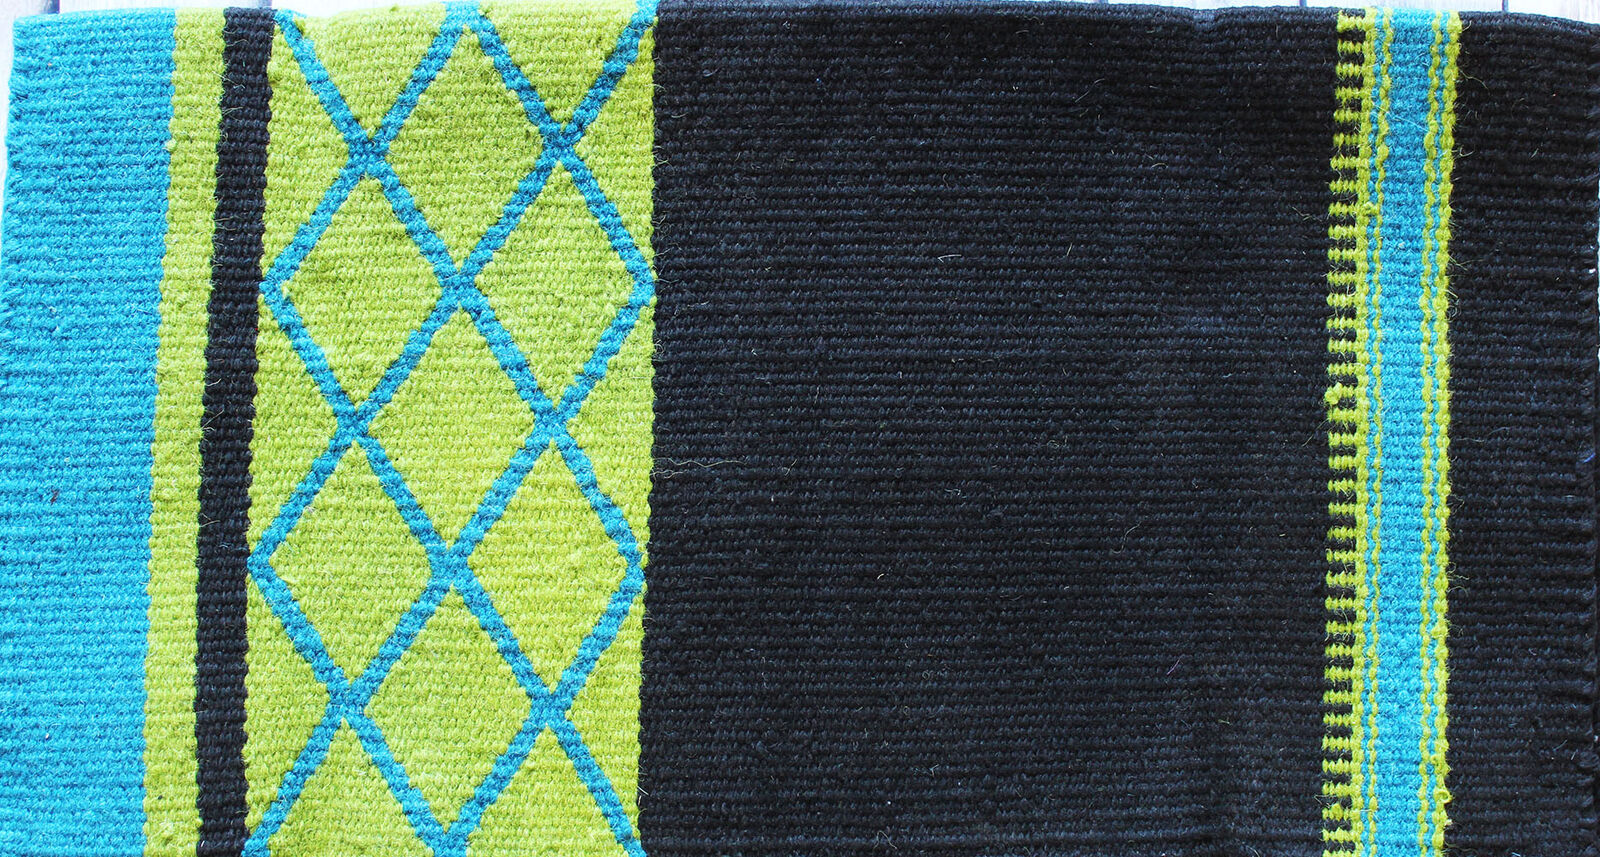 34x36 Horse Wool Western Show  Trail SADDLE BLANKET Rodeo Pad Rug Green 3620  best price